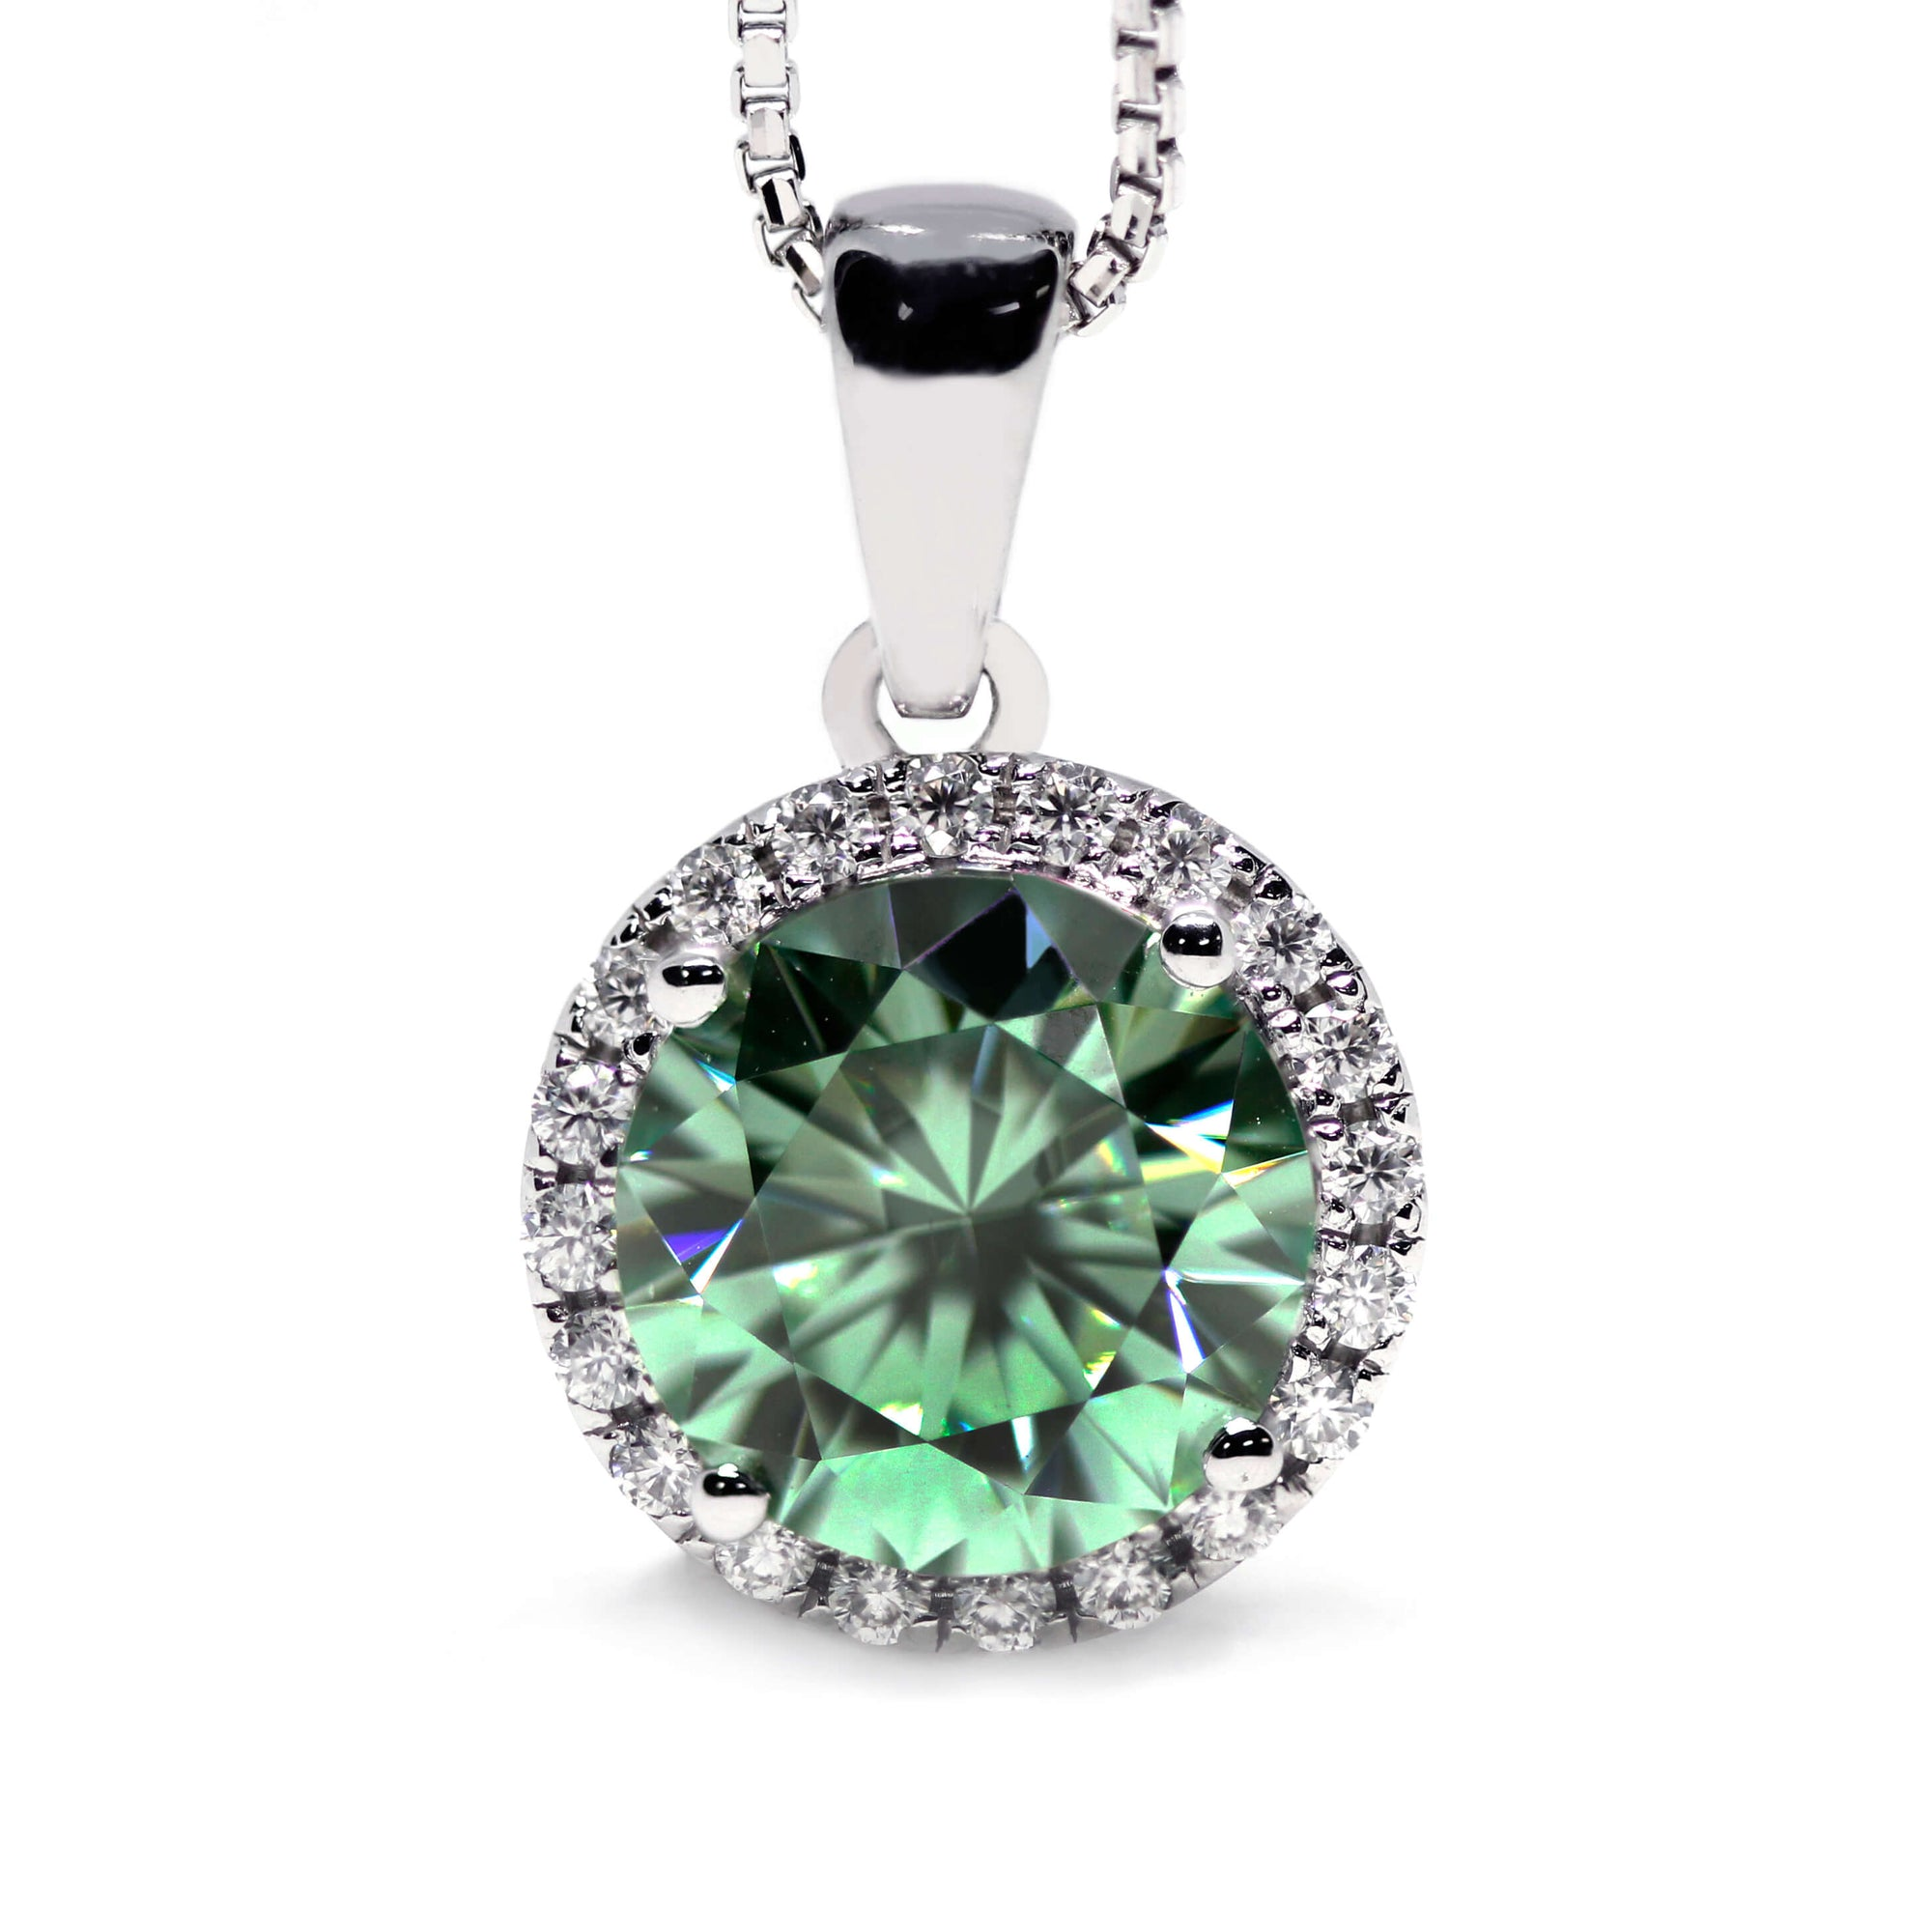 2 Carat Medium Green Moissanite Round Halo 18K Gold Pendant - Lecaine Gems Moissanite